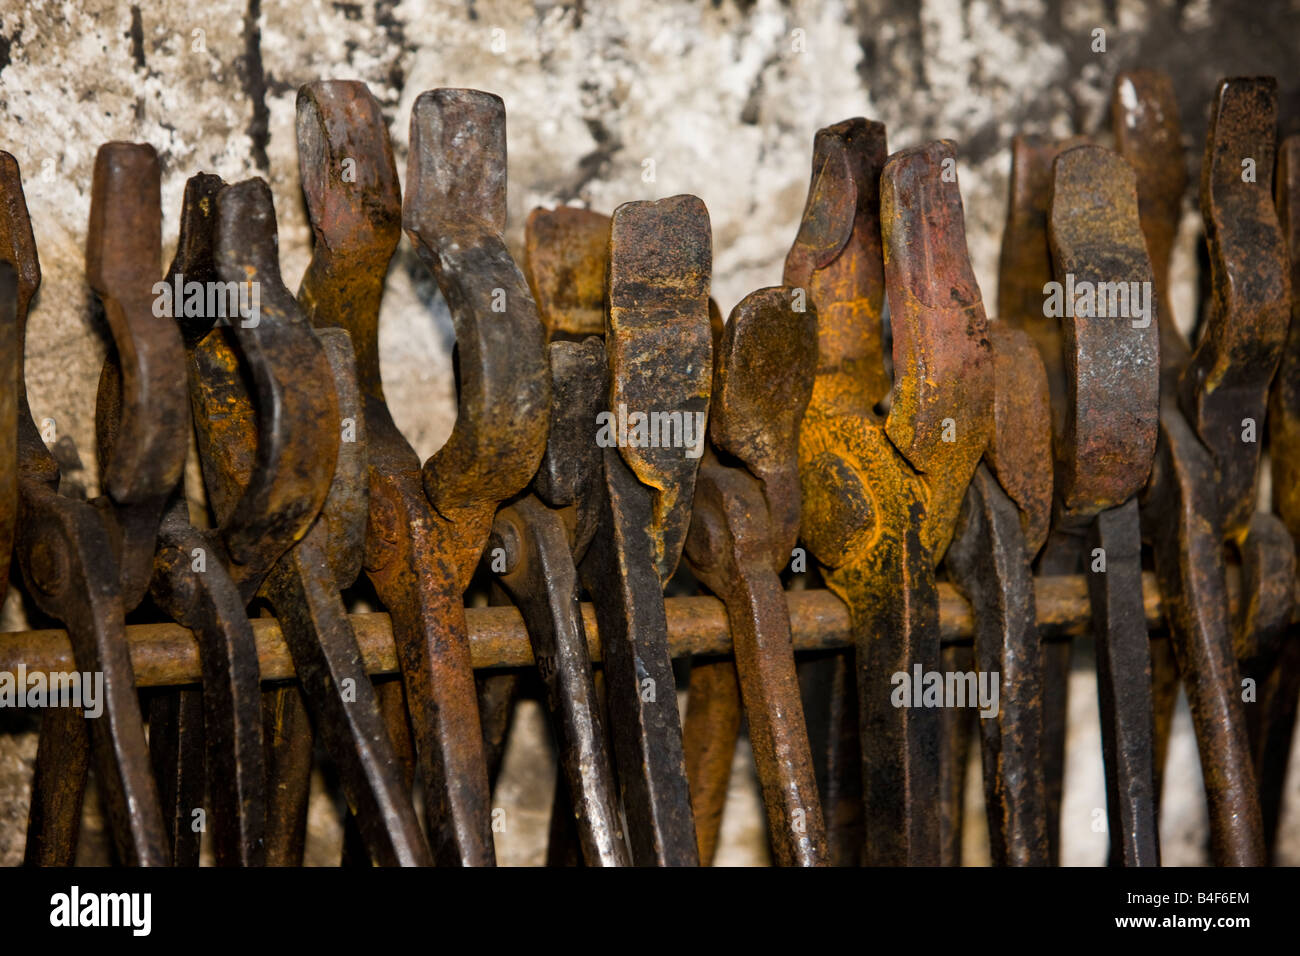 Tools on display in the Blacksmith Shop, Lower Fort Garry - a National Historic Site, Selkirk, Manitoba, Canada. - Stock Image